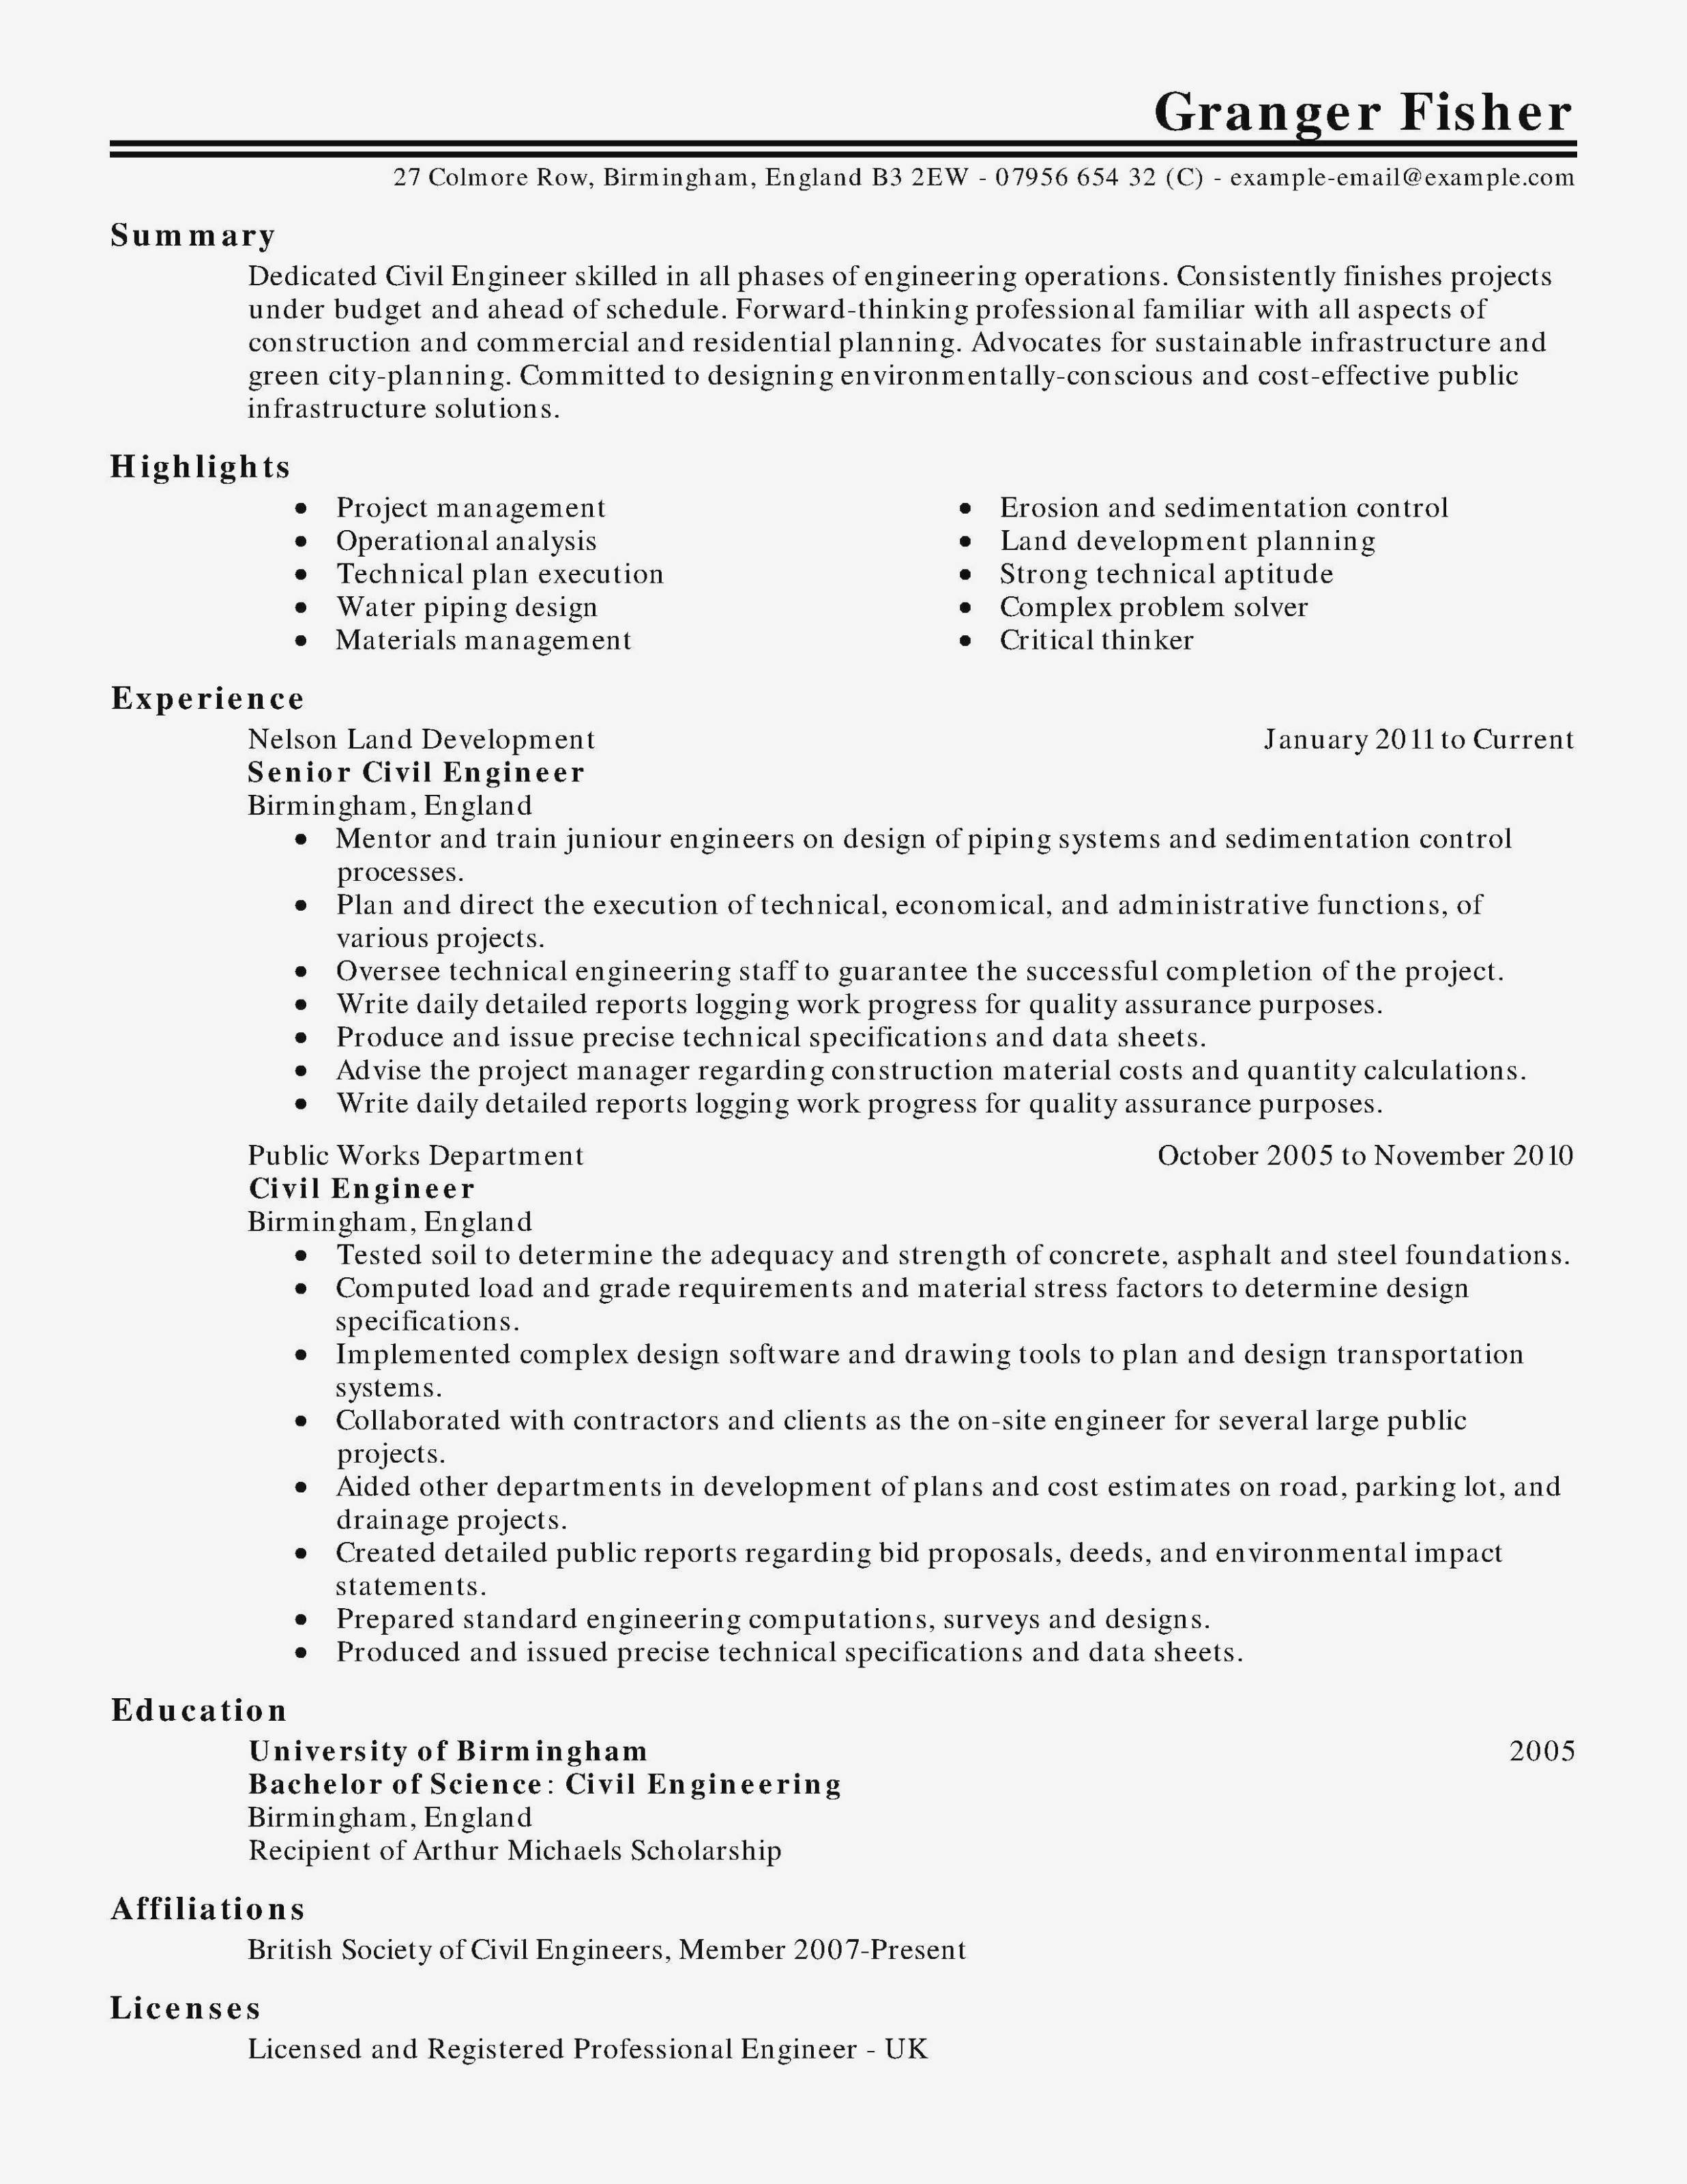 Royalty Free License Agreement Template